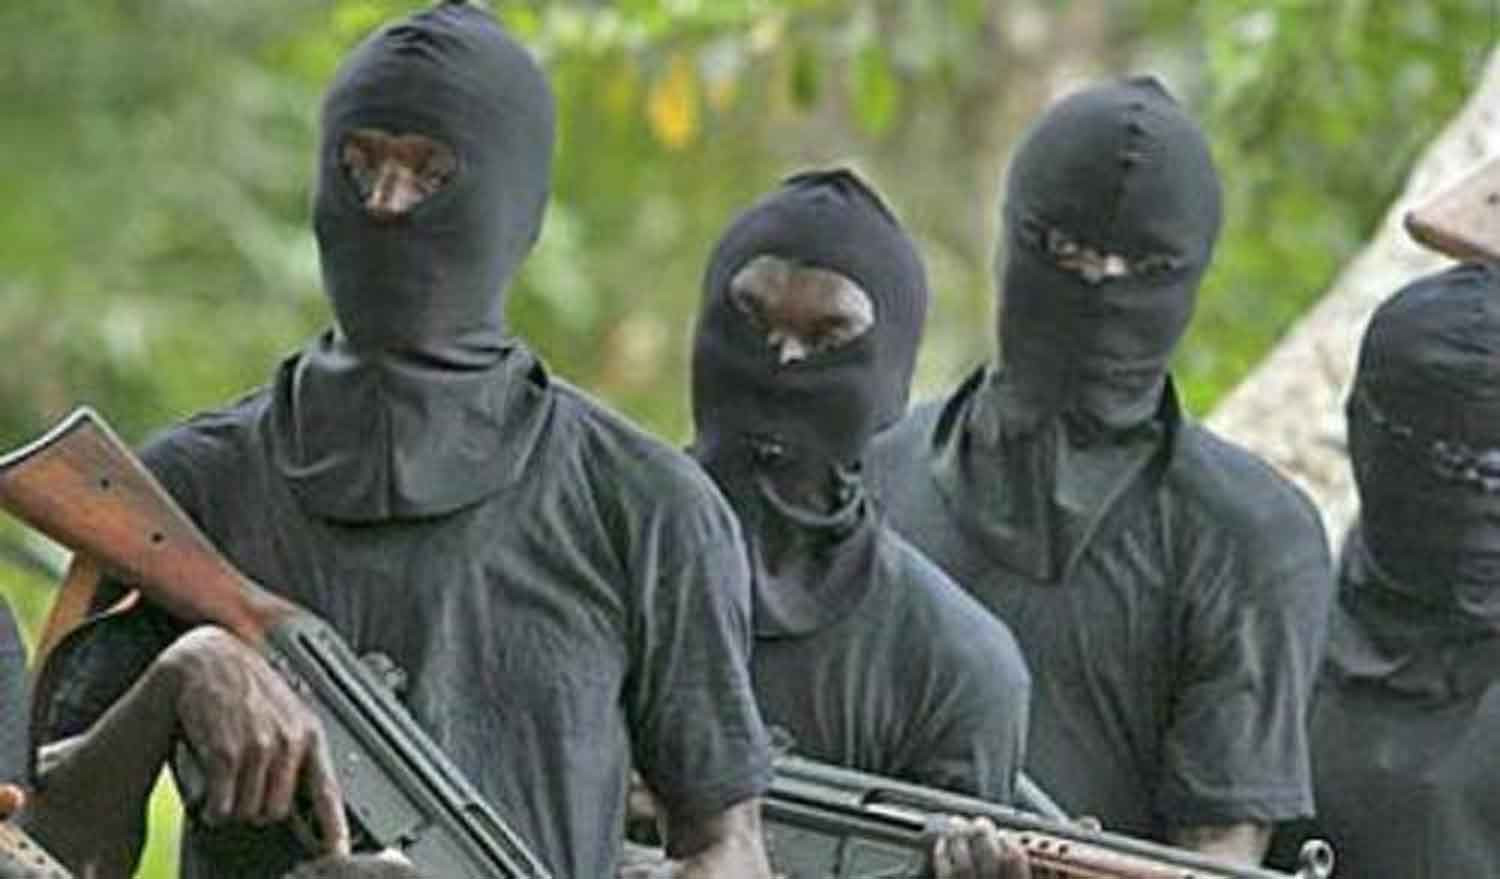 Students allegedly abducted in Kaduna school while preparing for exam